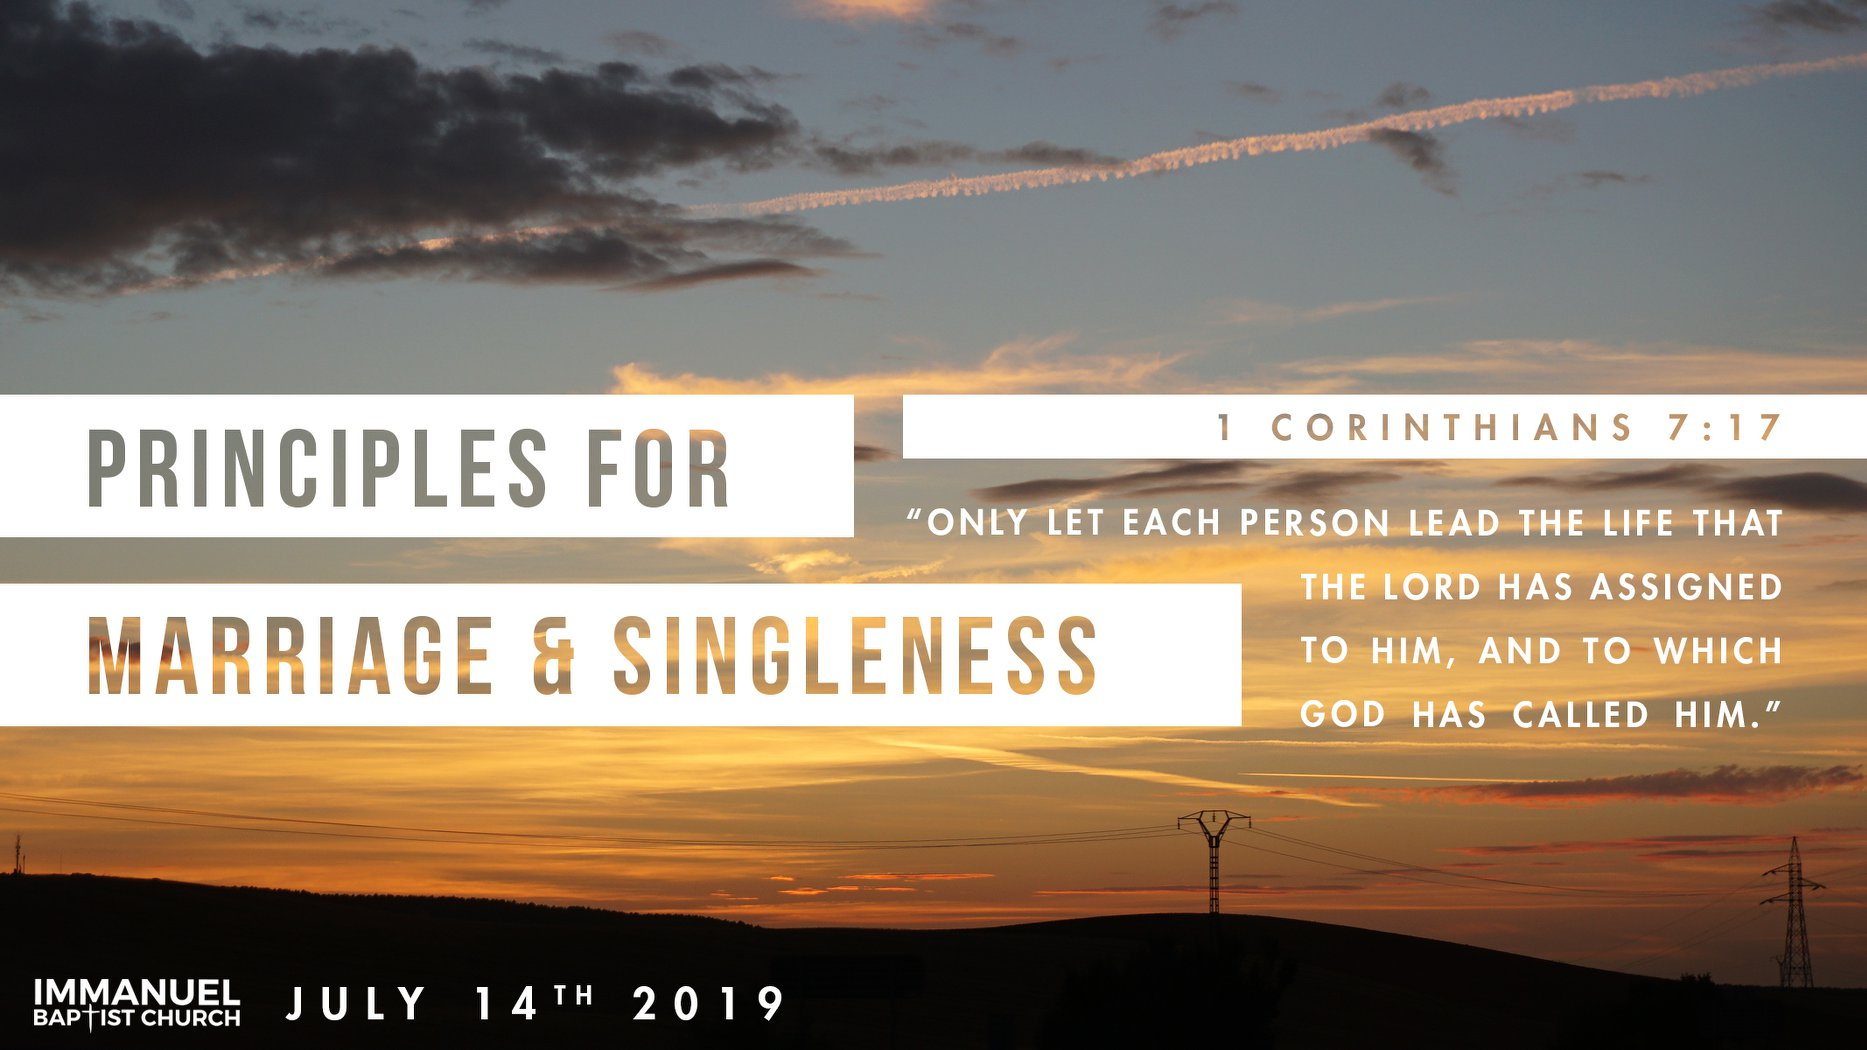 Principles for Marriage & Singleness